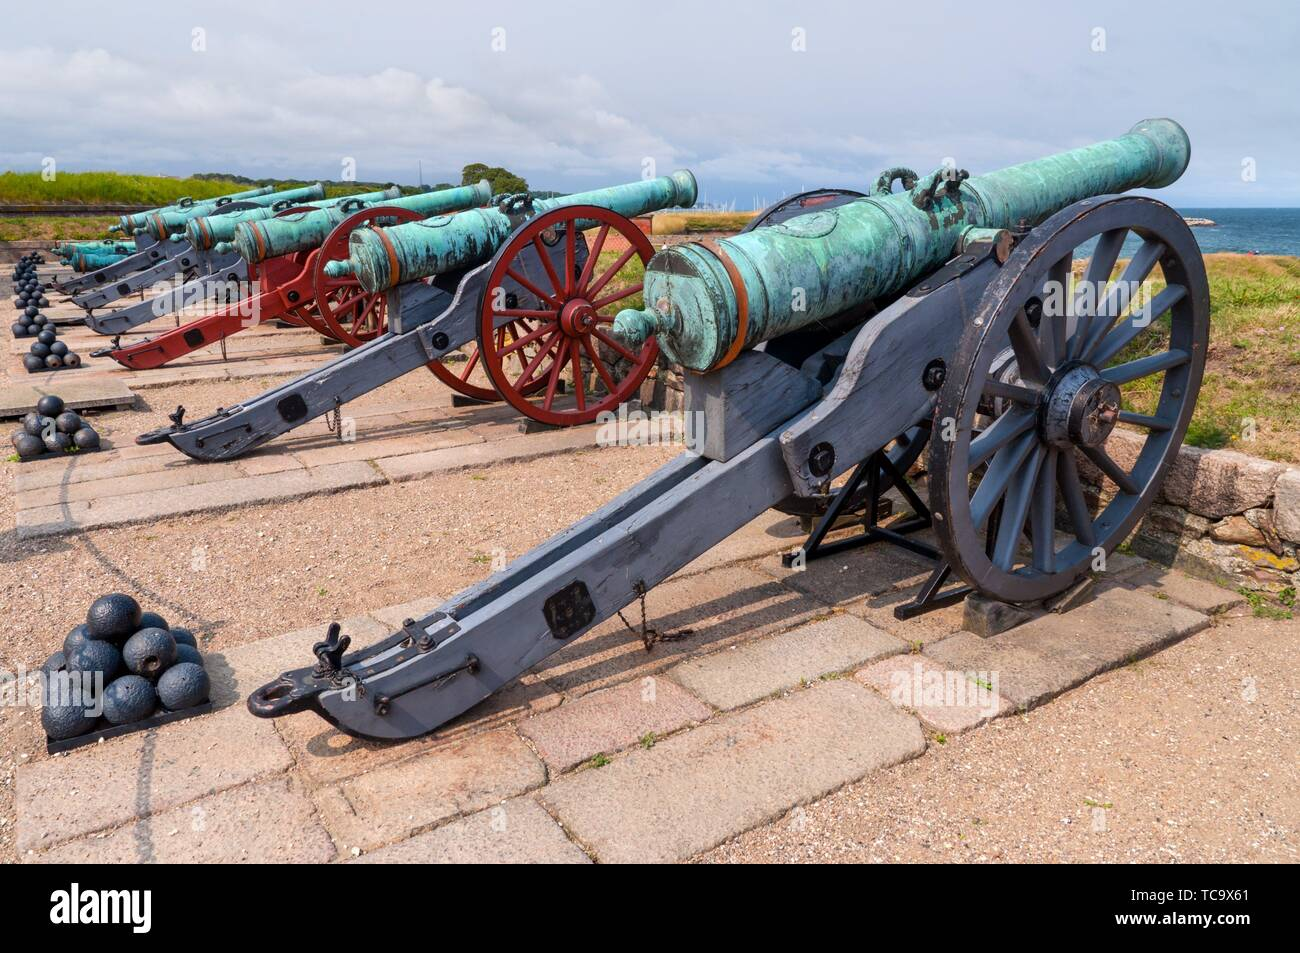 Ancient battle cannons in Kronborg castle, Denmark. - Stock Image